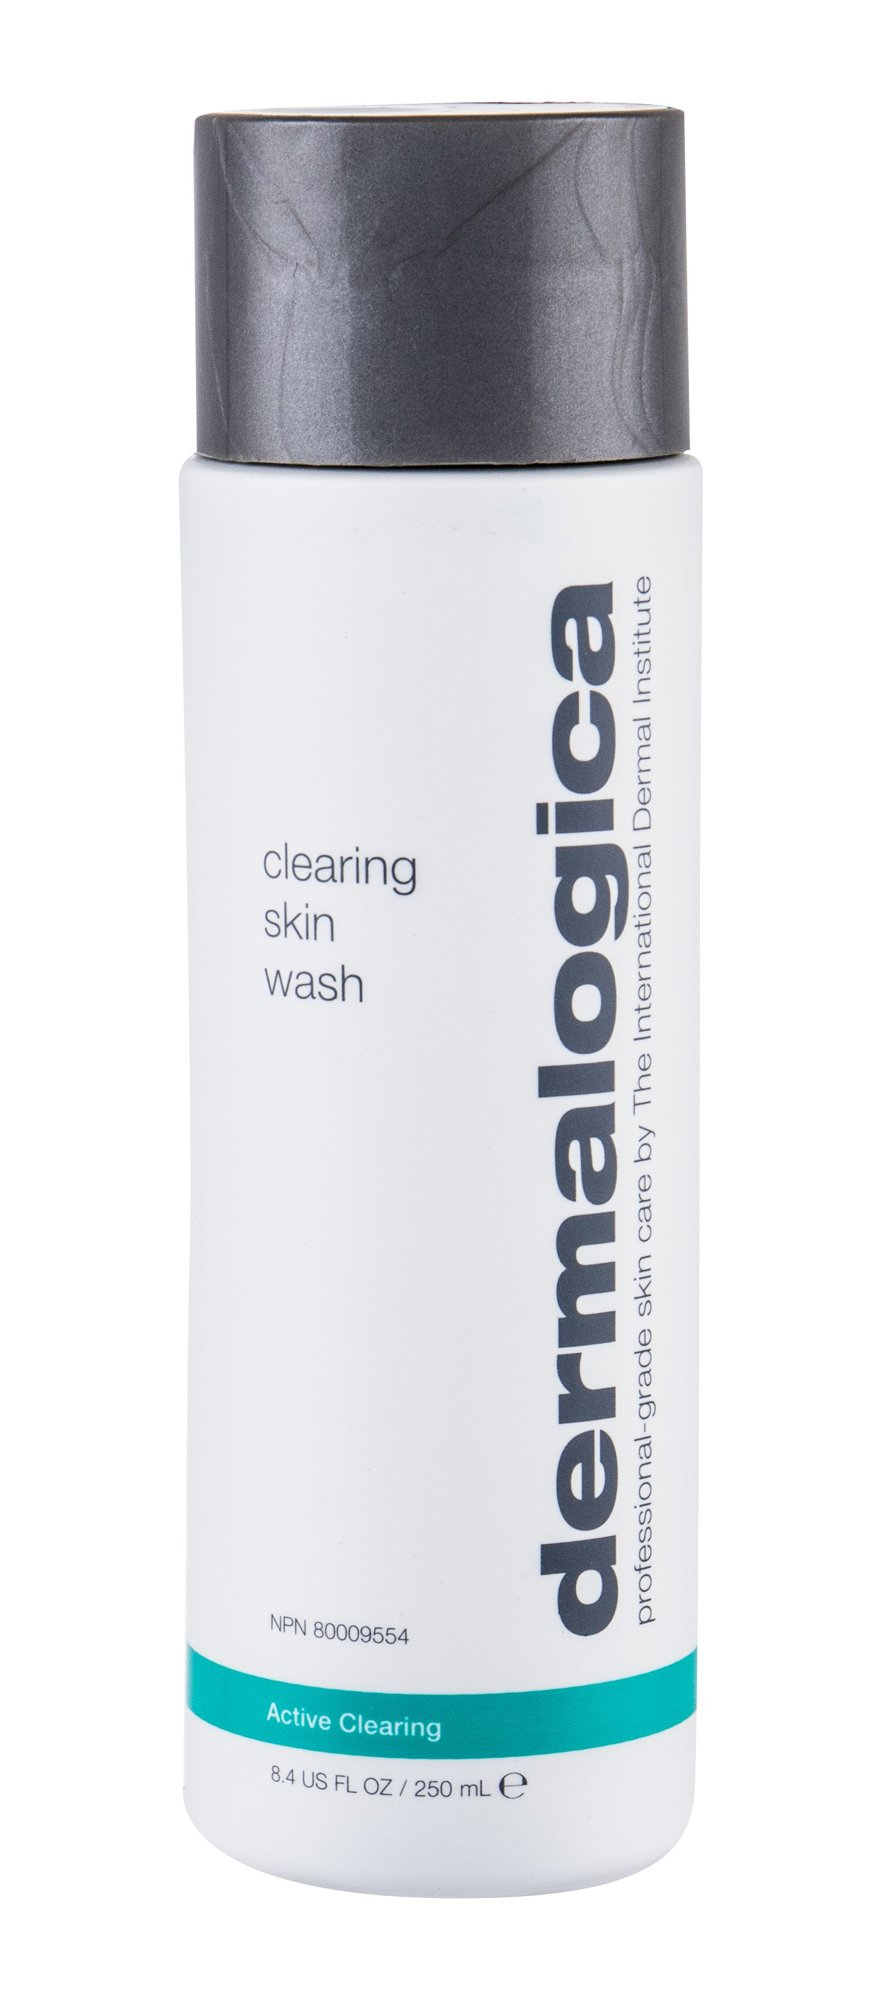 Dermalogica Active Clearing Clearing Skin Wash, Habzó arctisztító 250ml